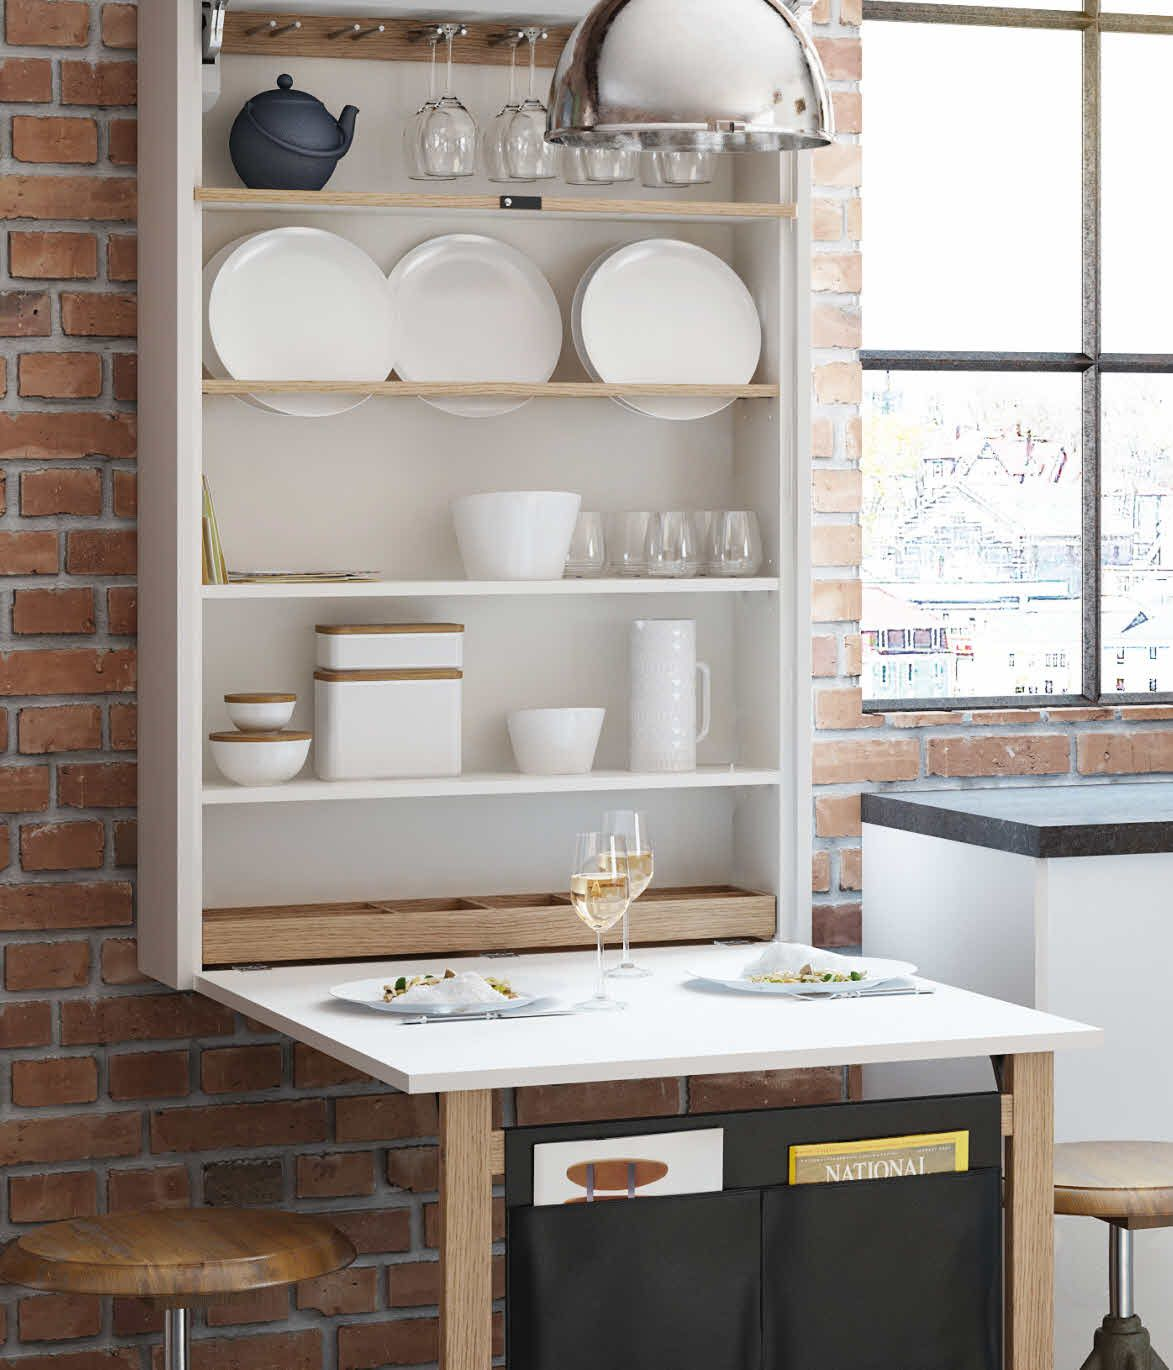 murphy kitchen table Small kitchen Table shelf as a unit